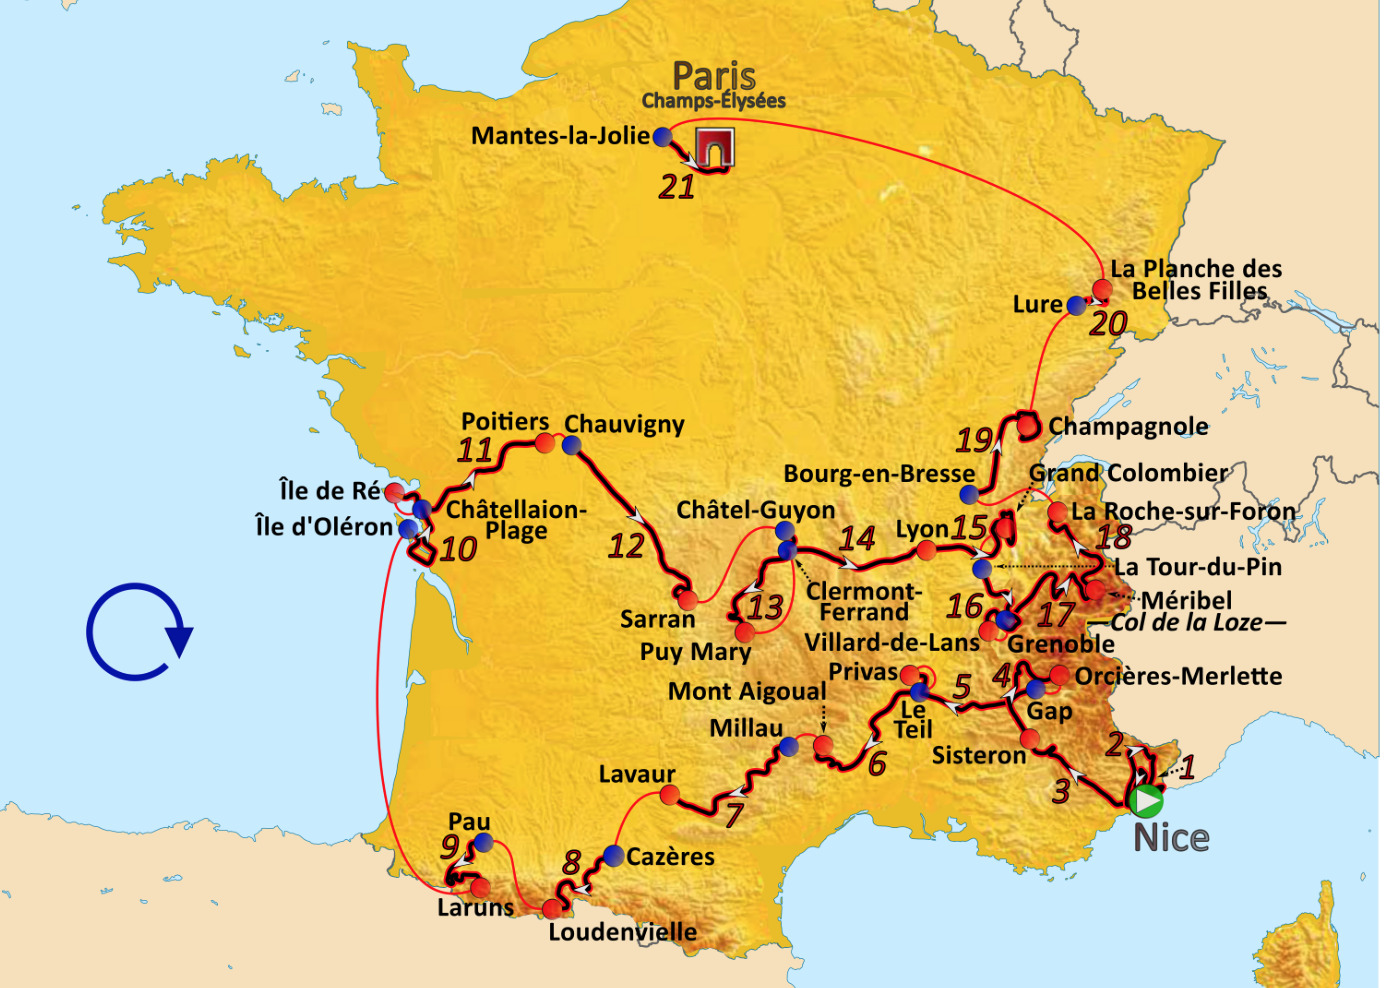 Route of the 2020 edition of the Tour de France.